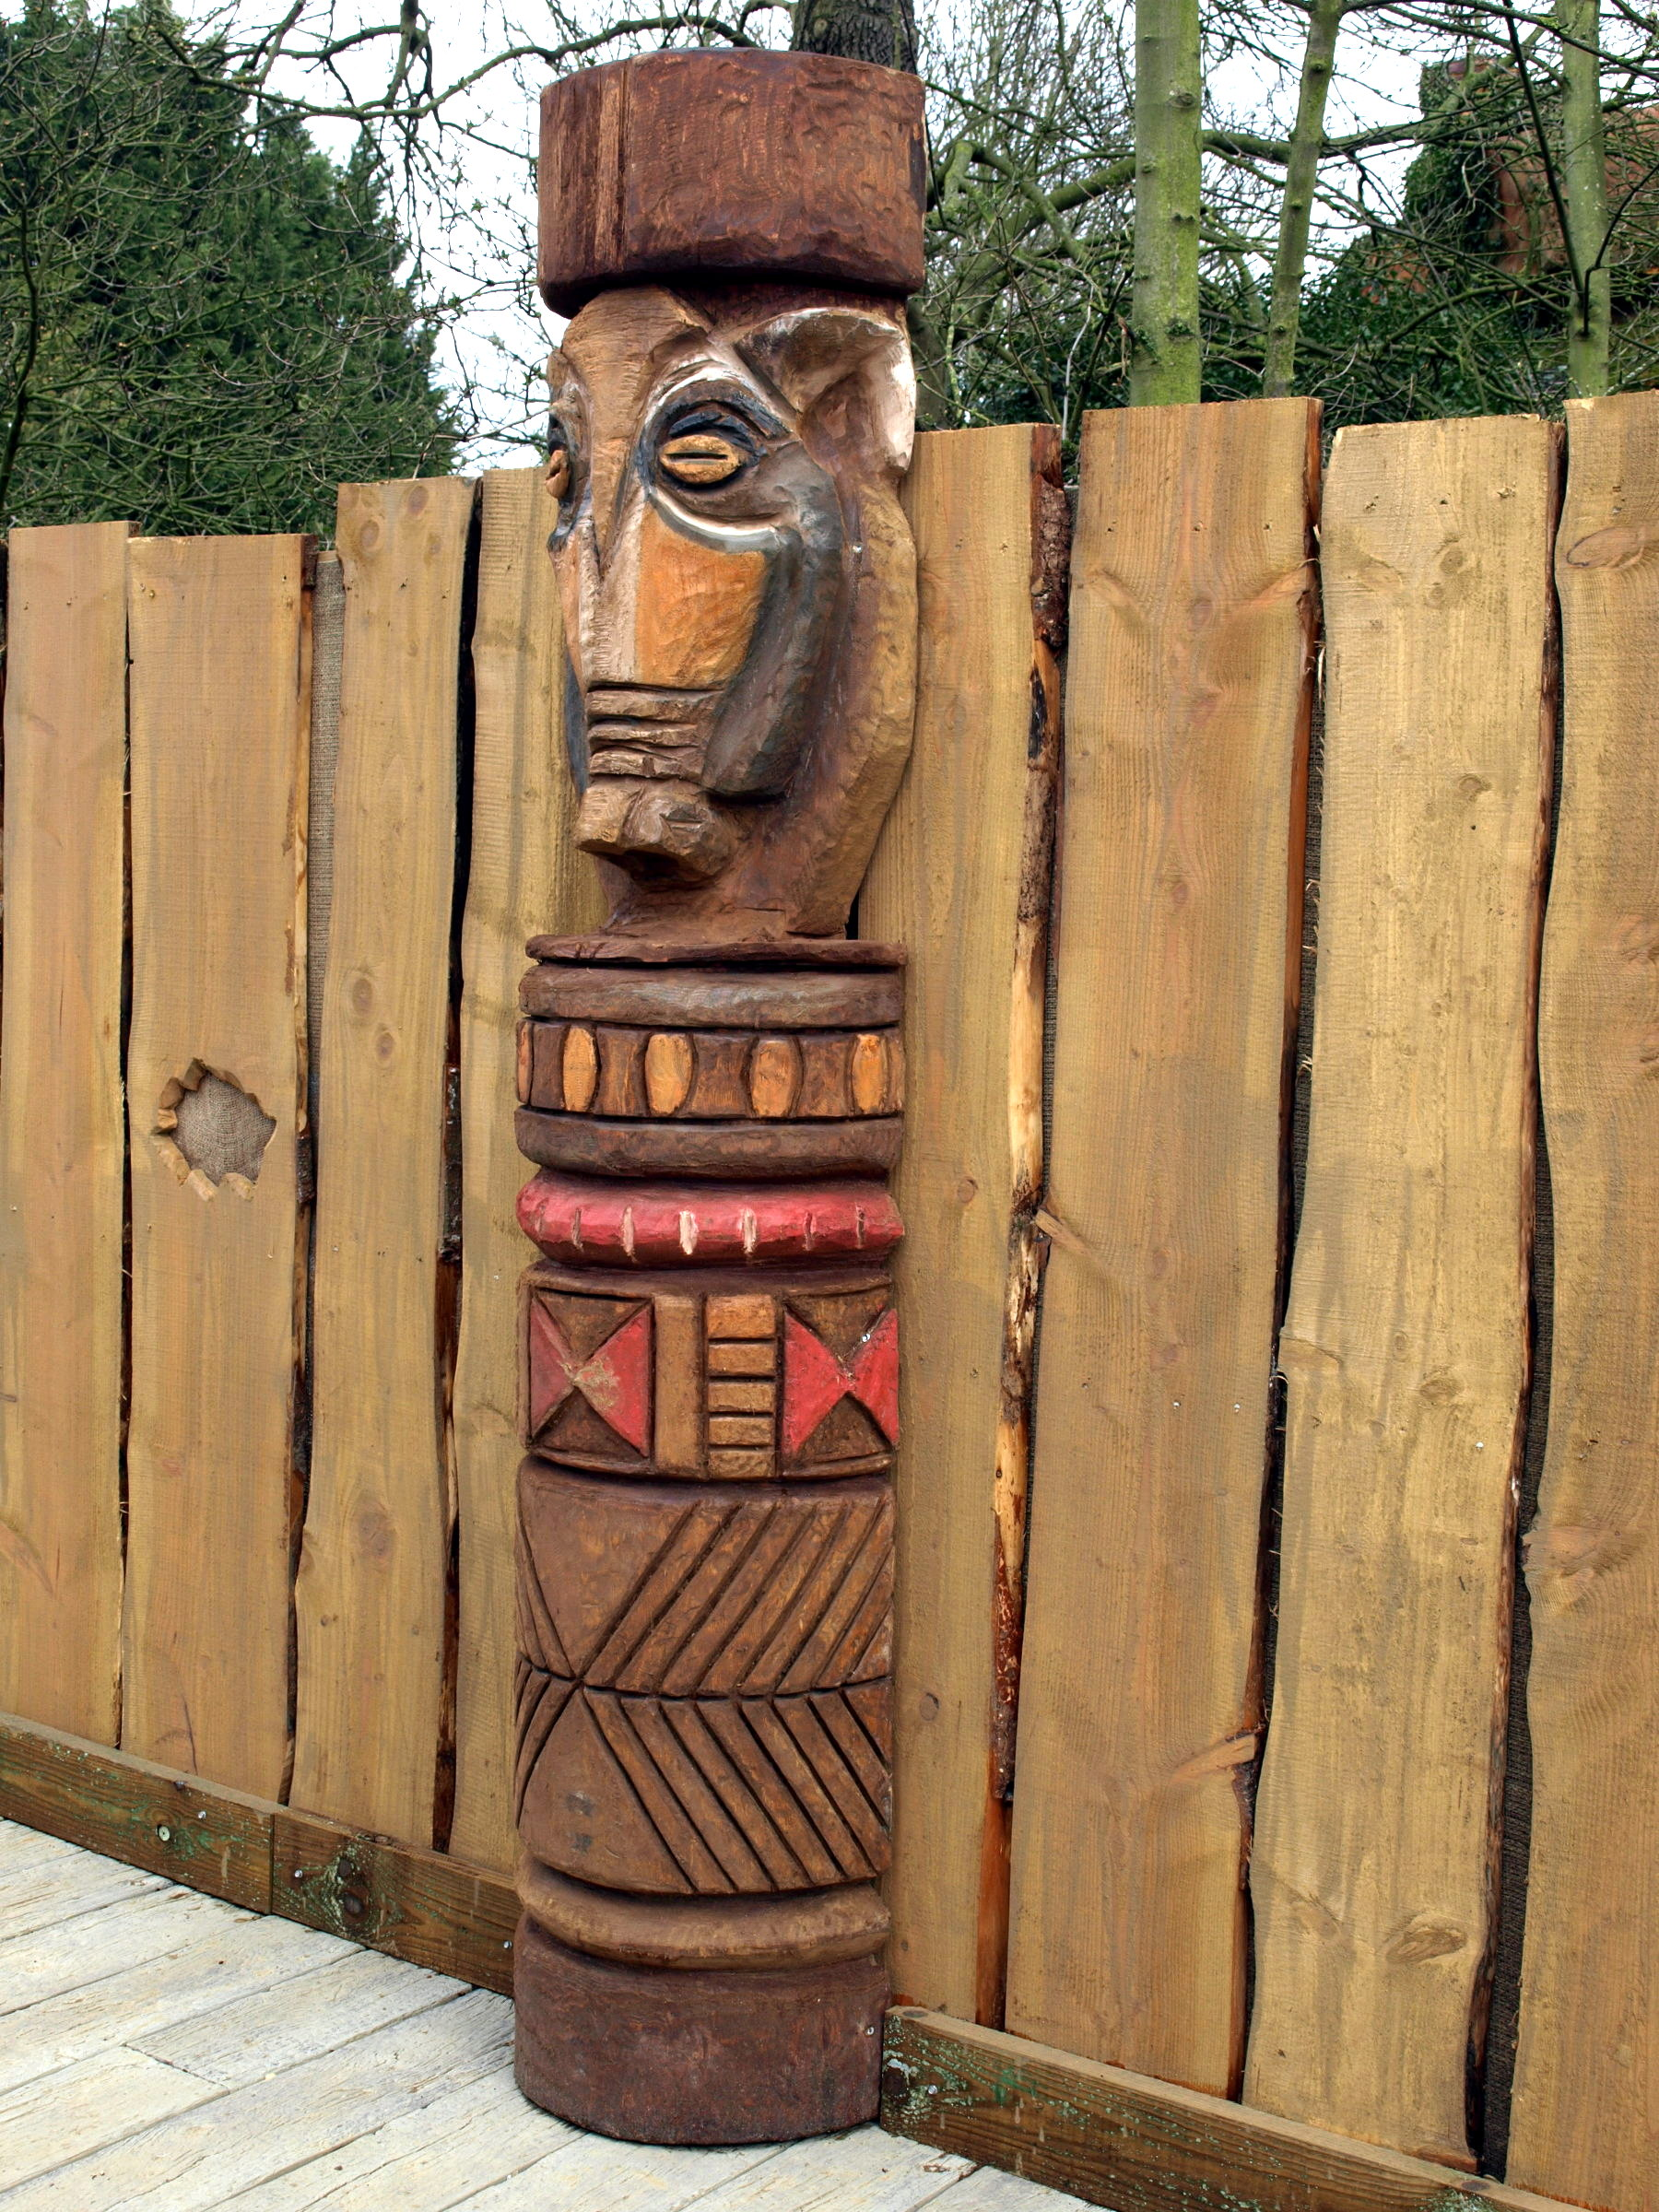 Totem poles zufari chessington